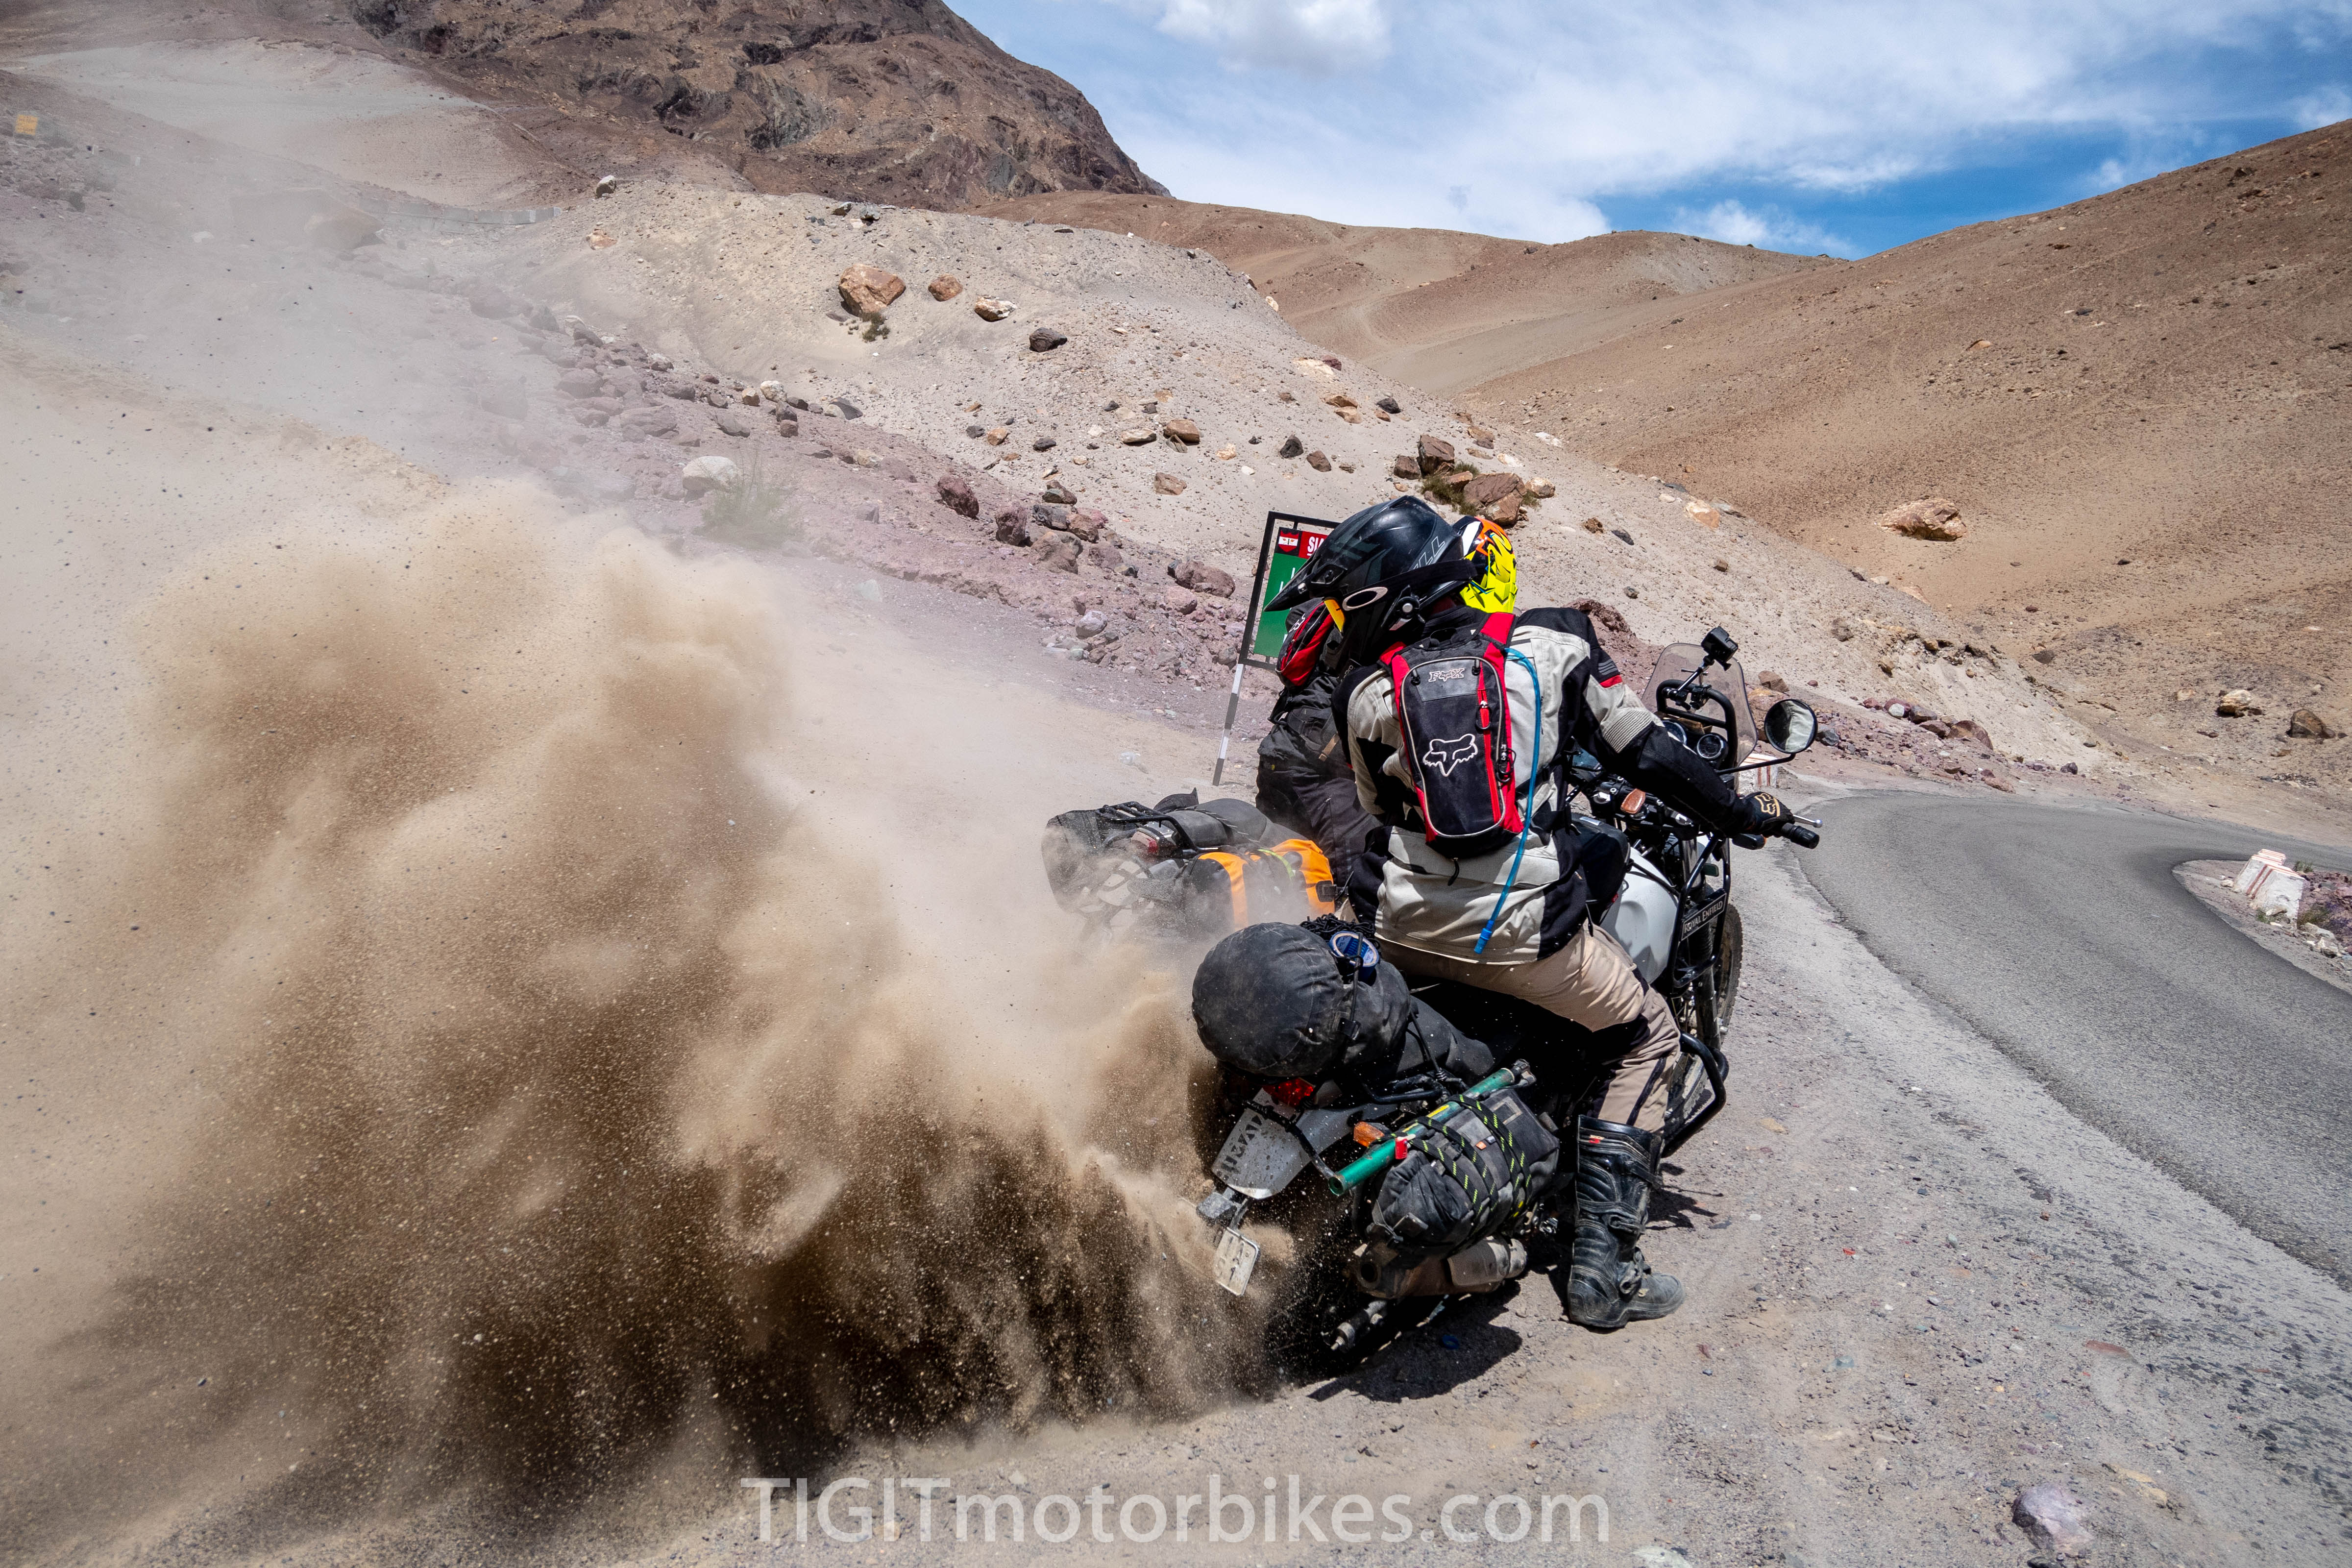 Royal Enfield Himalayan getting abused